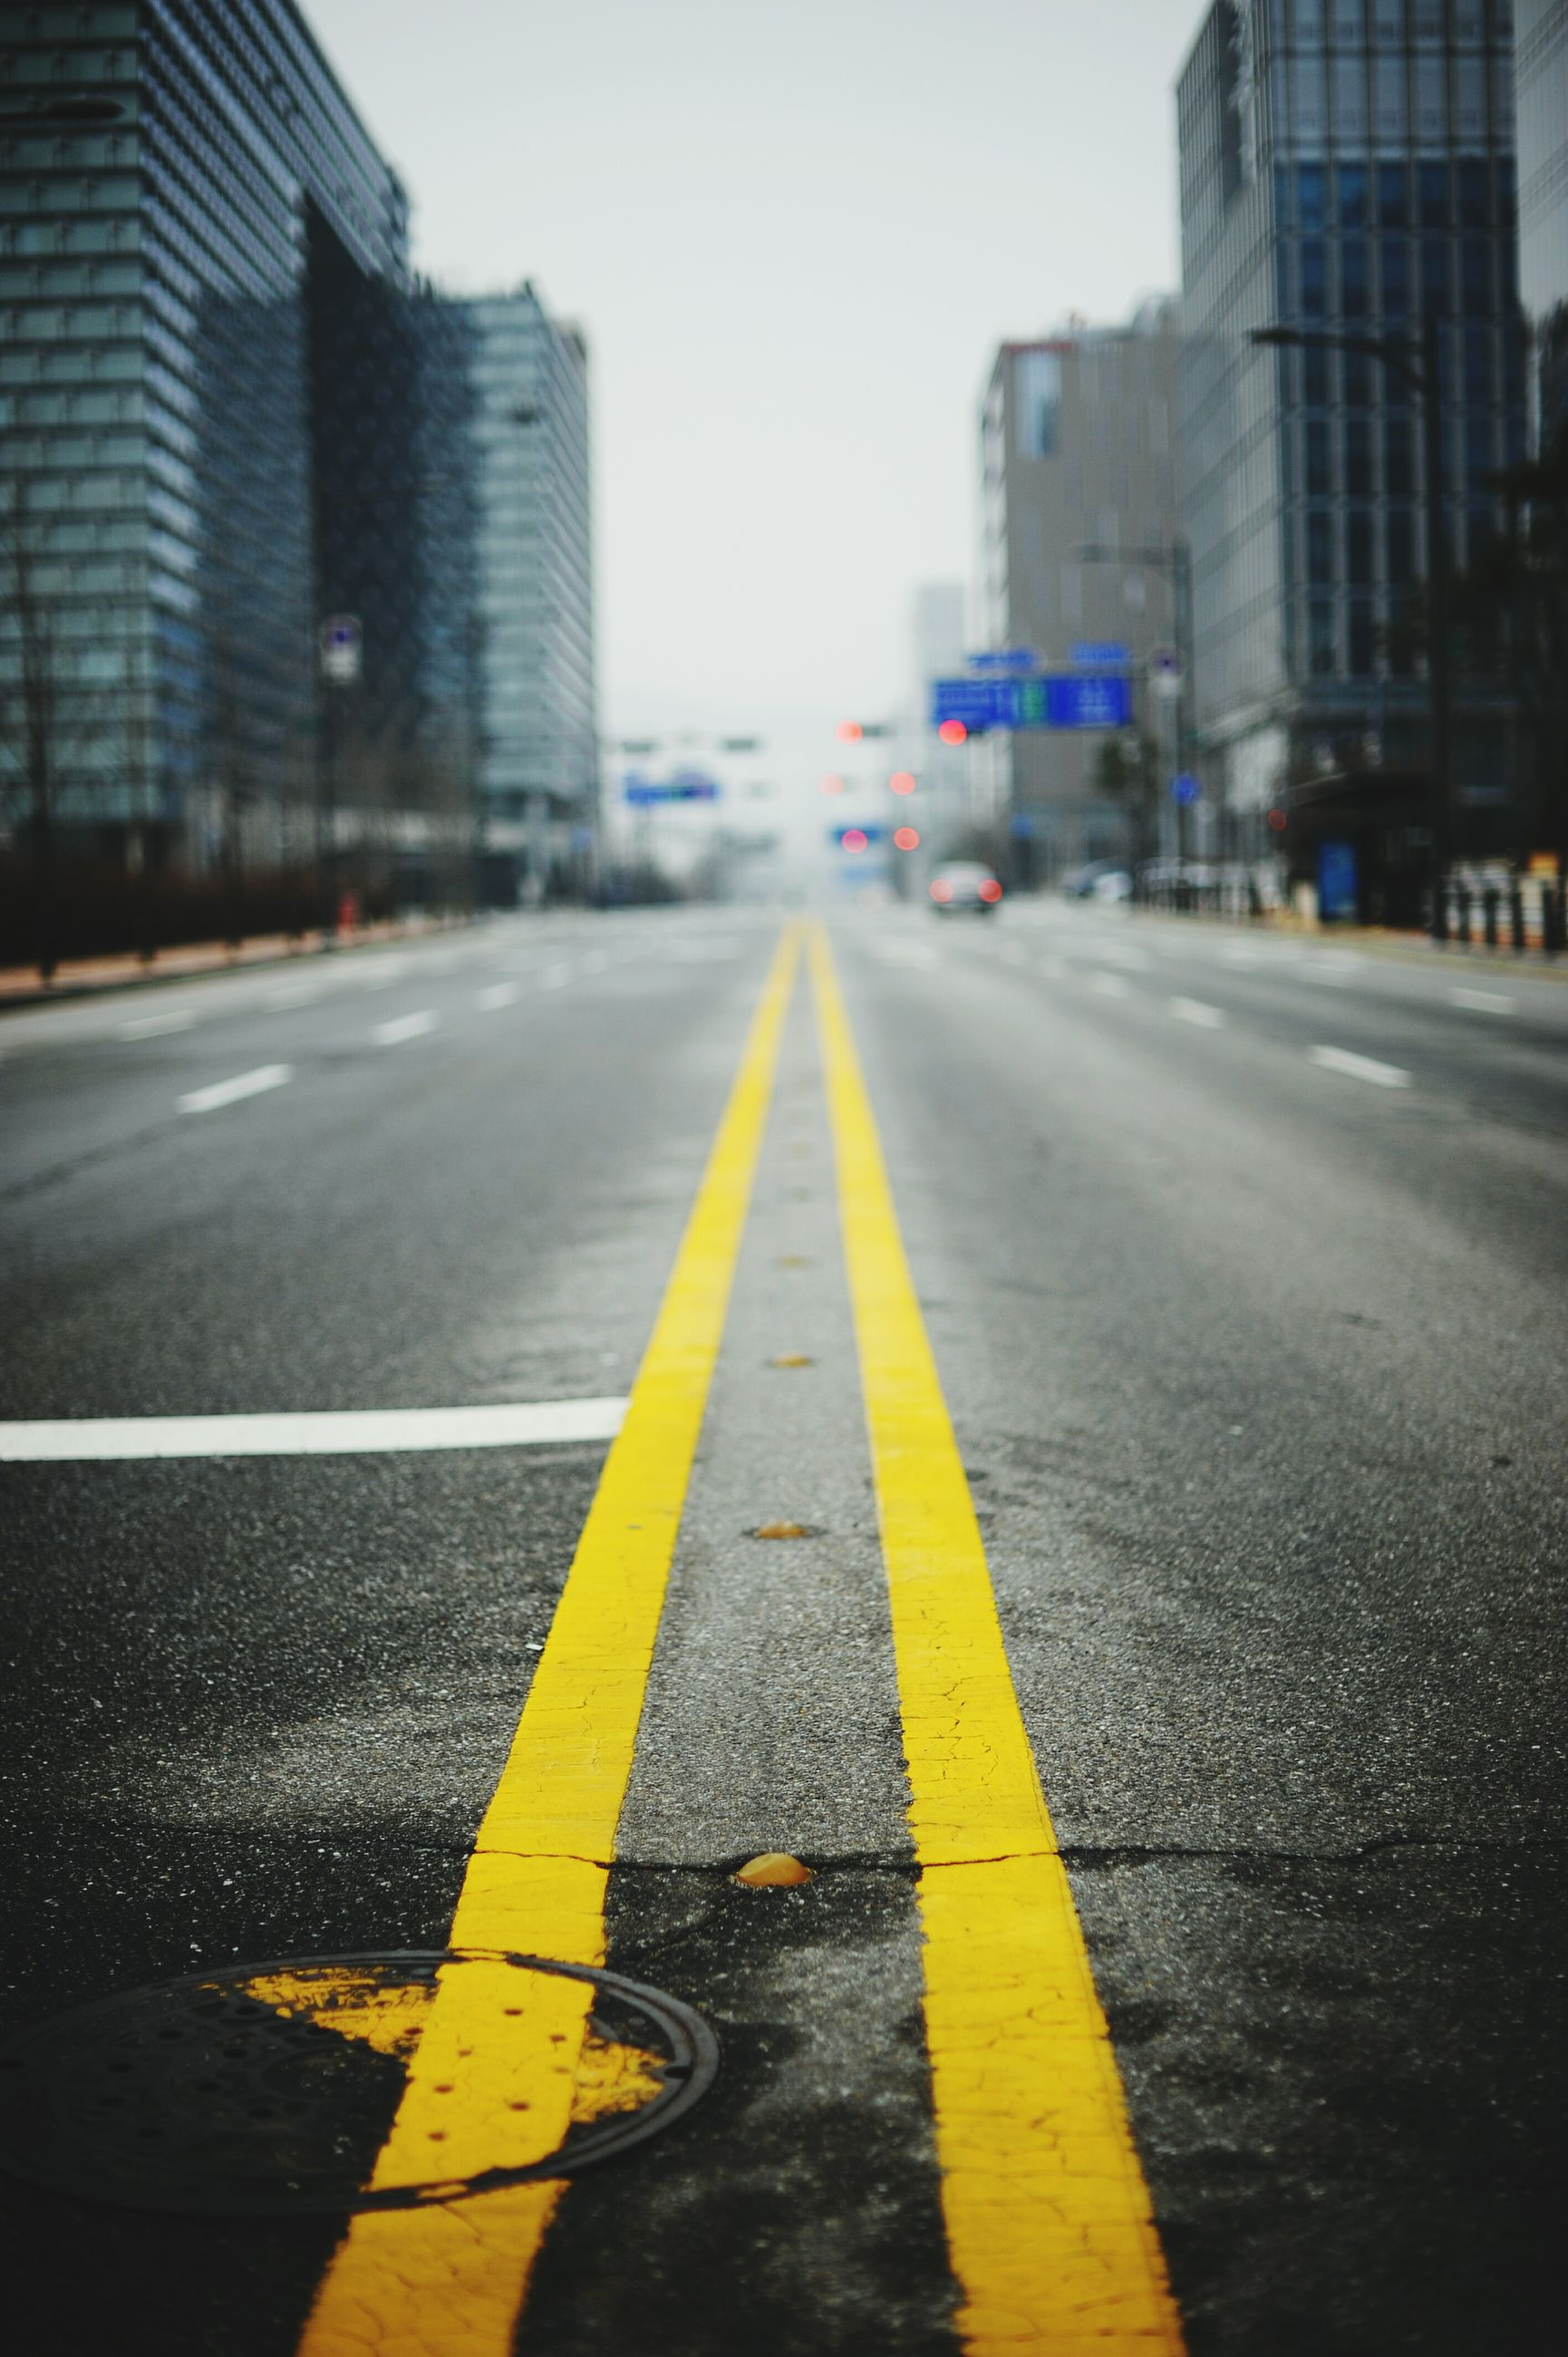 the way forward, road marking, transportation, building exterior, diminishing perspective, architecture, built structure, city, road, street, vanishing point, asphalt, yellow, surface level, arrow symbol, city life, dividing line, outdoors, sky, road sign